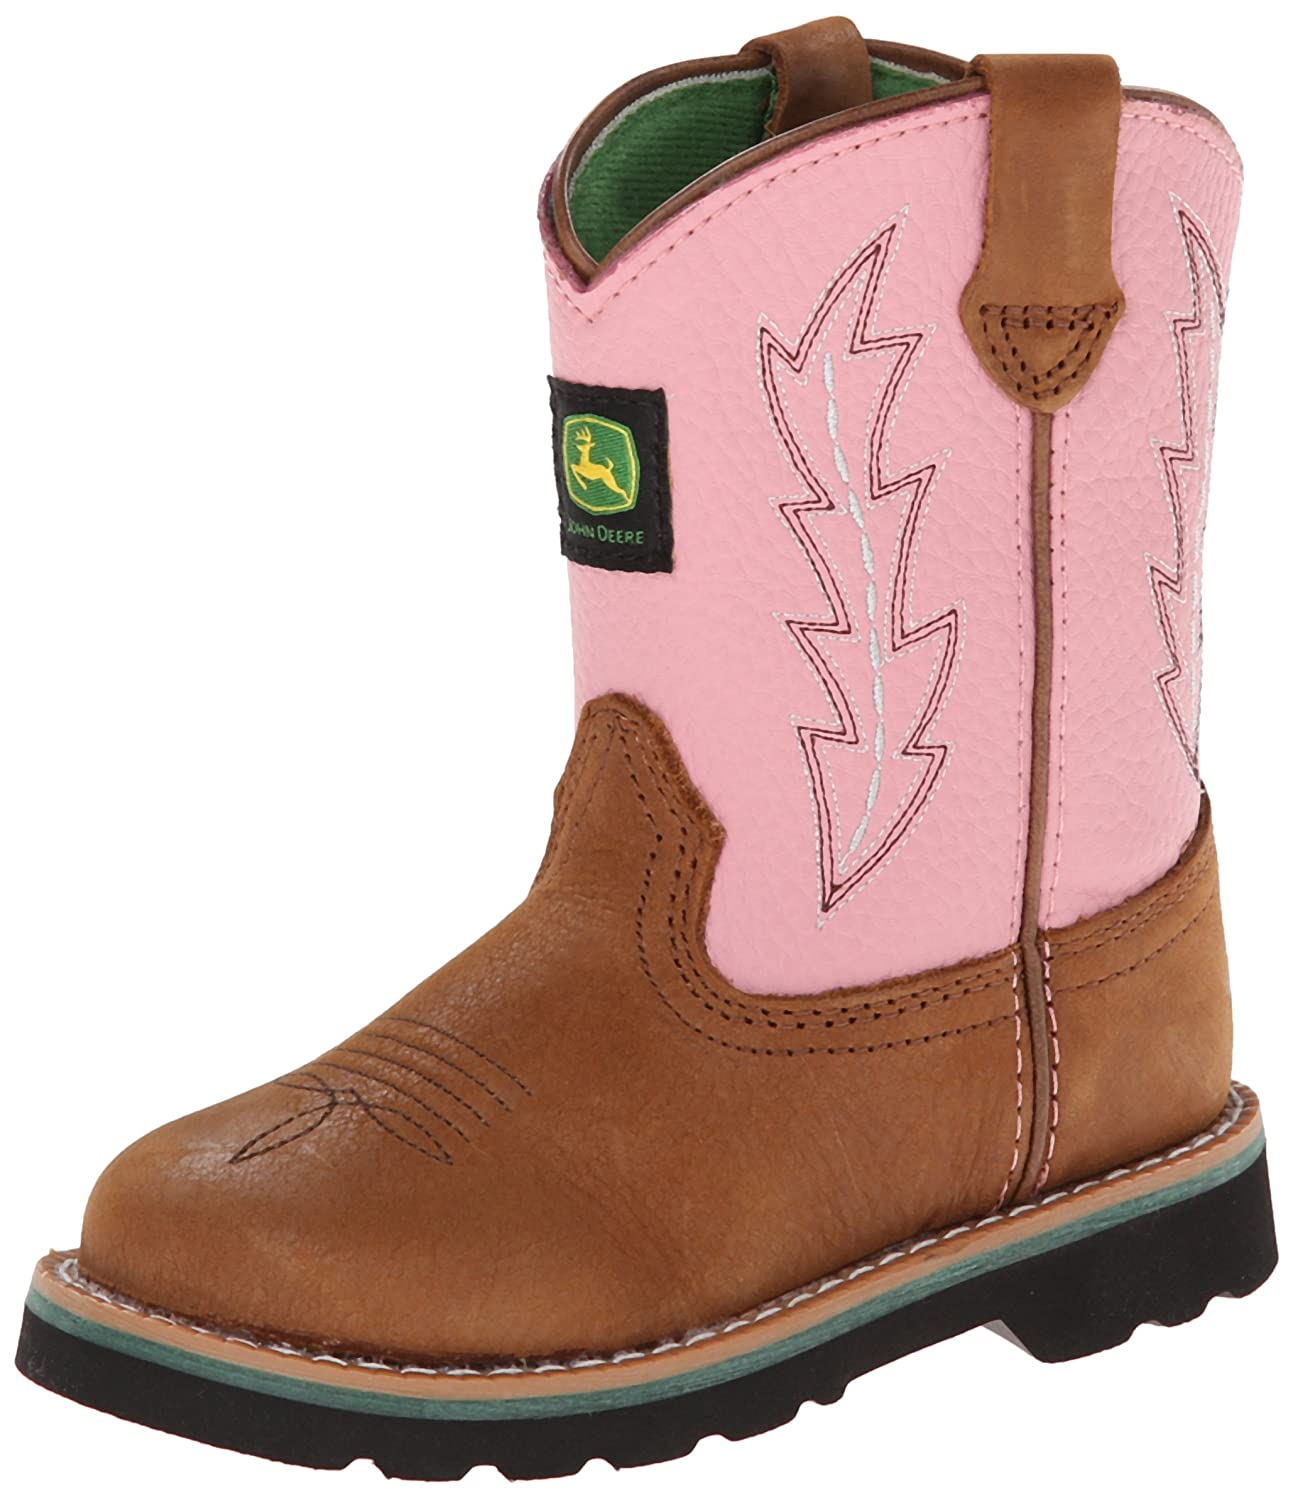 amazon com deere 1185 boot toddler boots